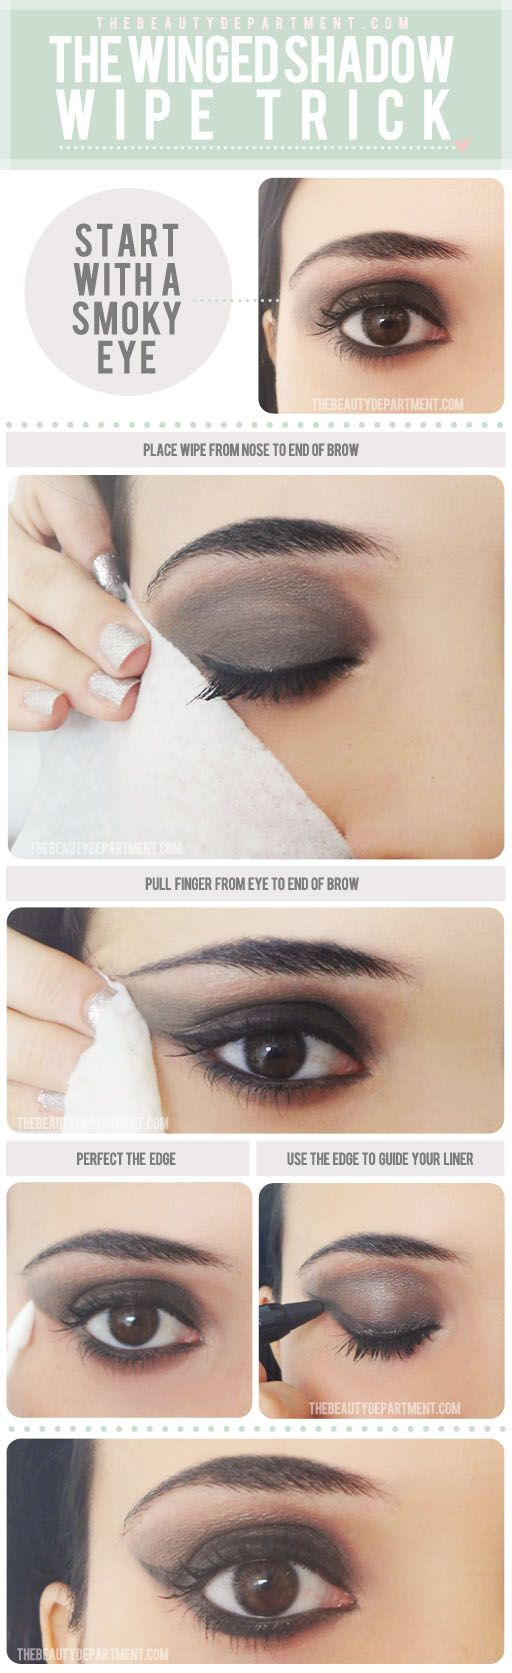 20 Helpful Makeup Tutorials, DGE PERFECTION